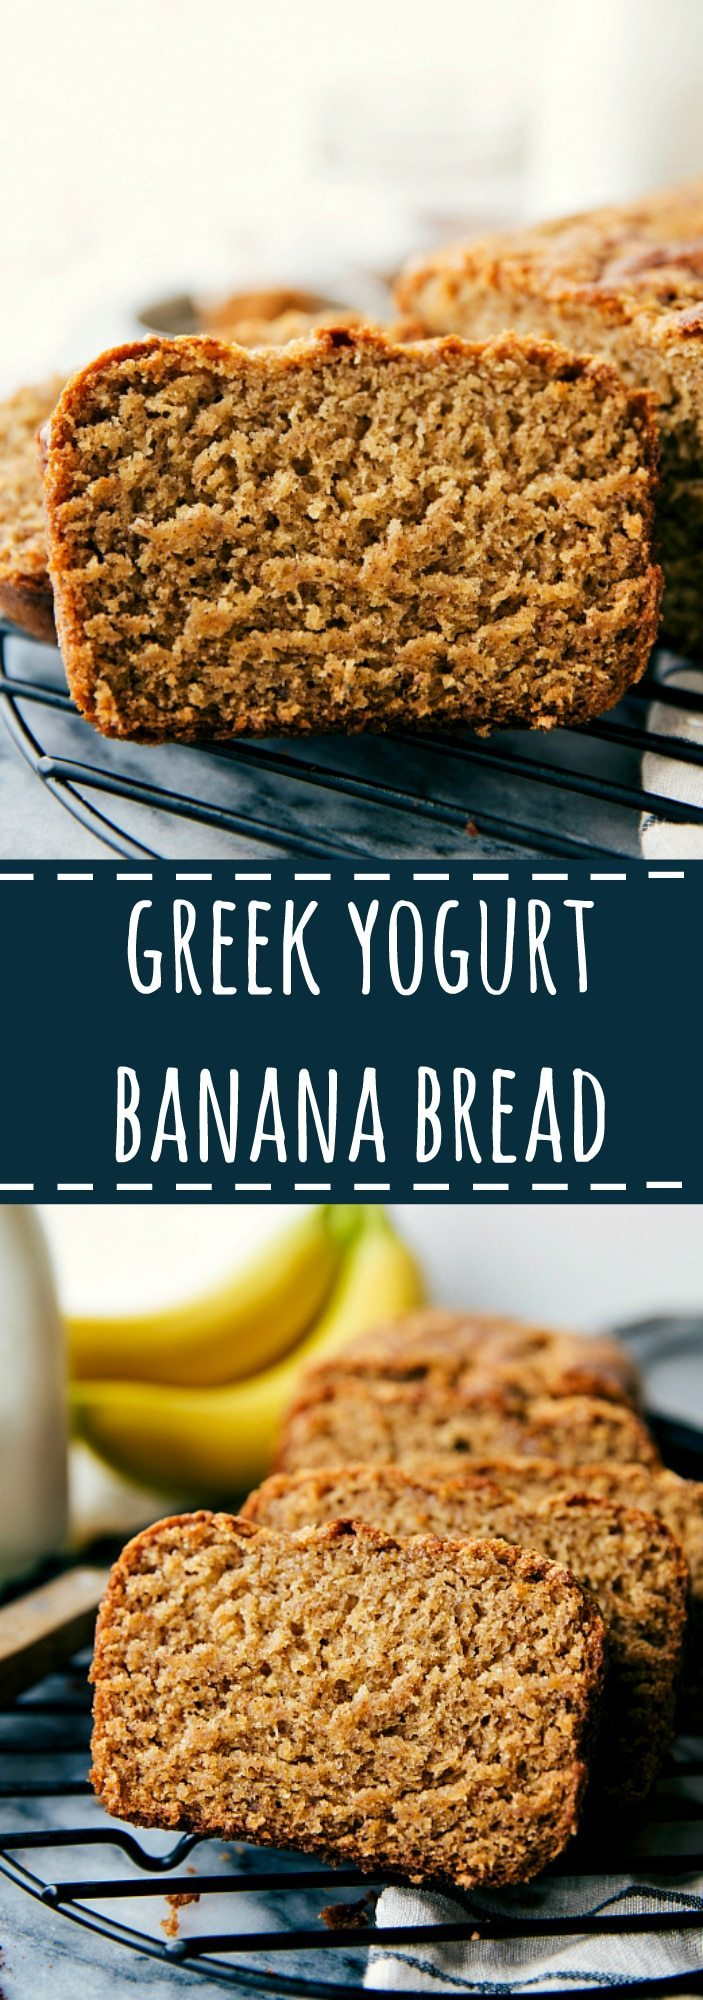 Healthier Greek Yogurt Banana Bread (Video) - Chelsea's Messy Apron